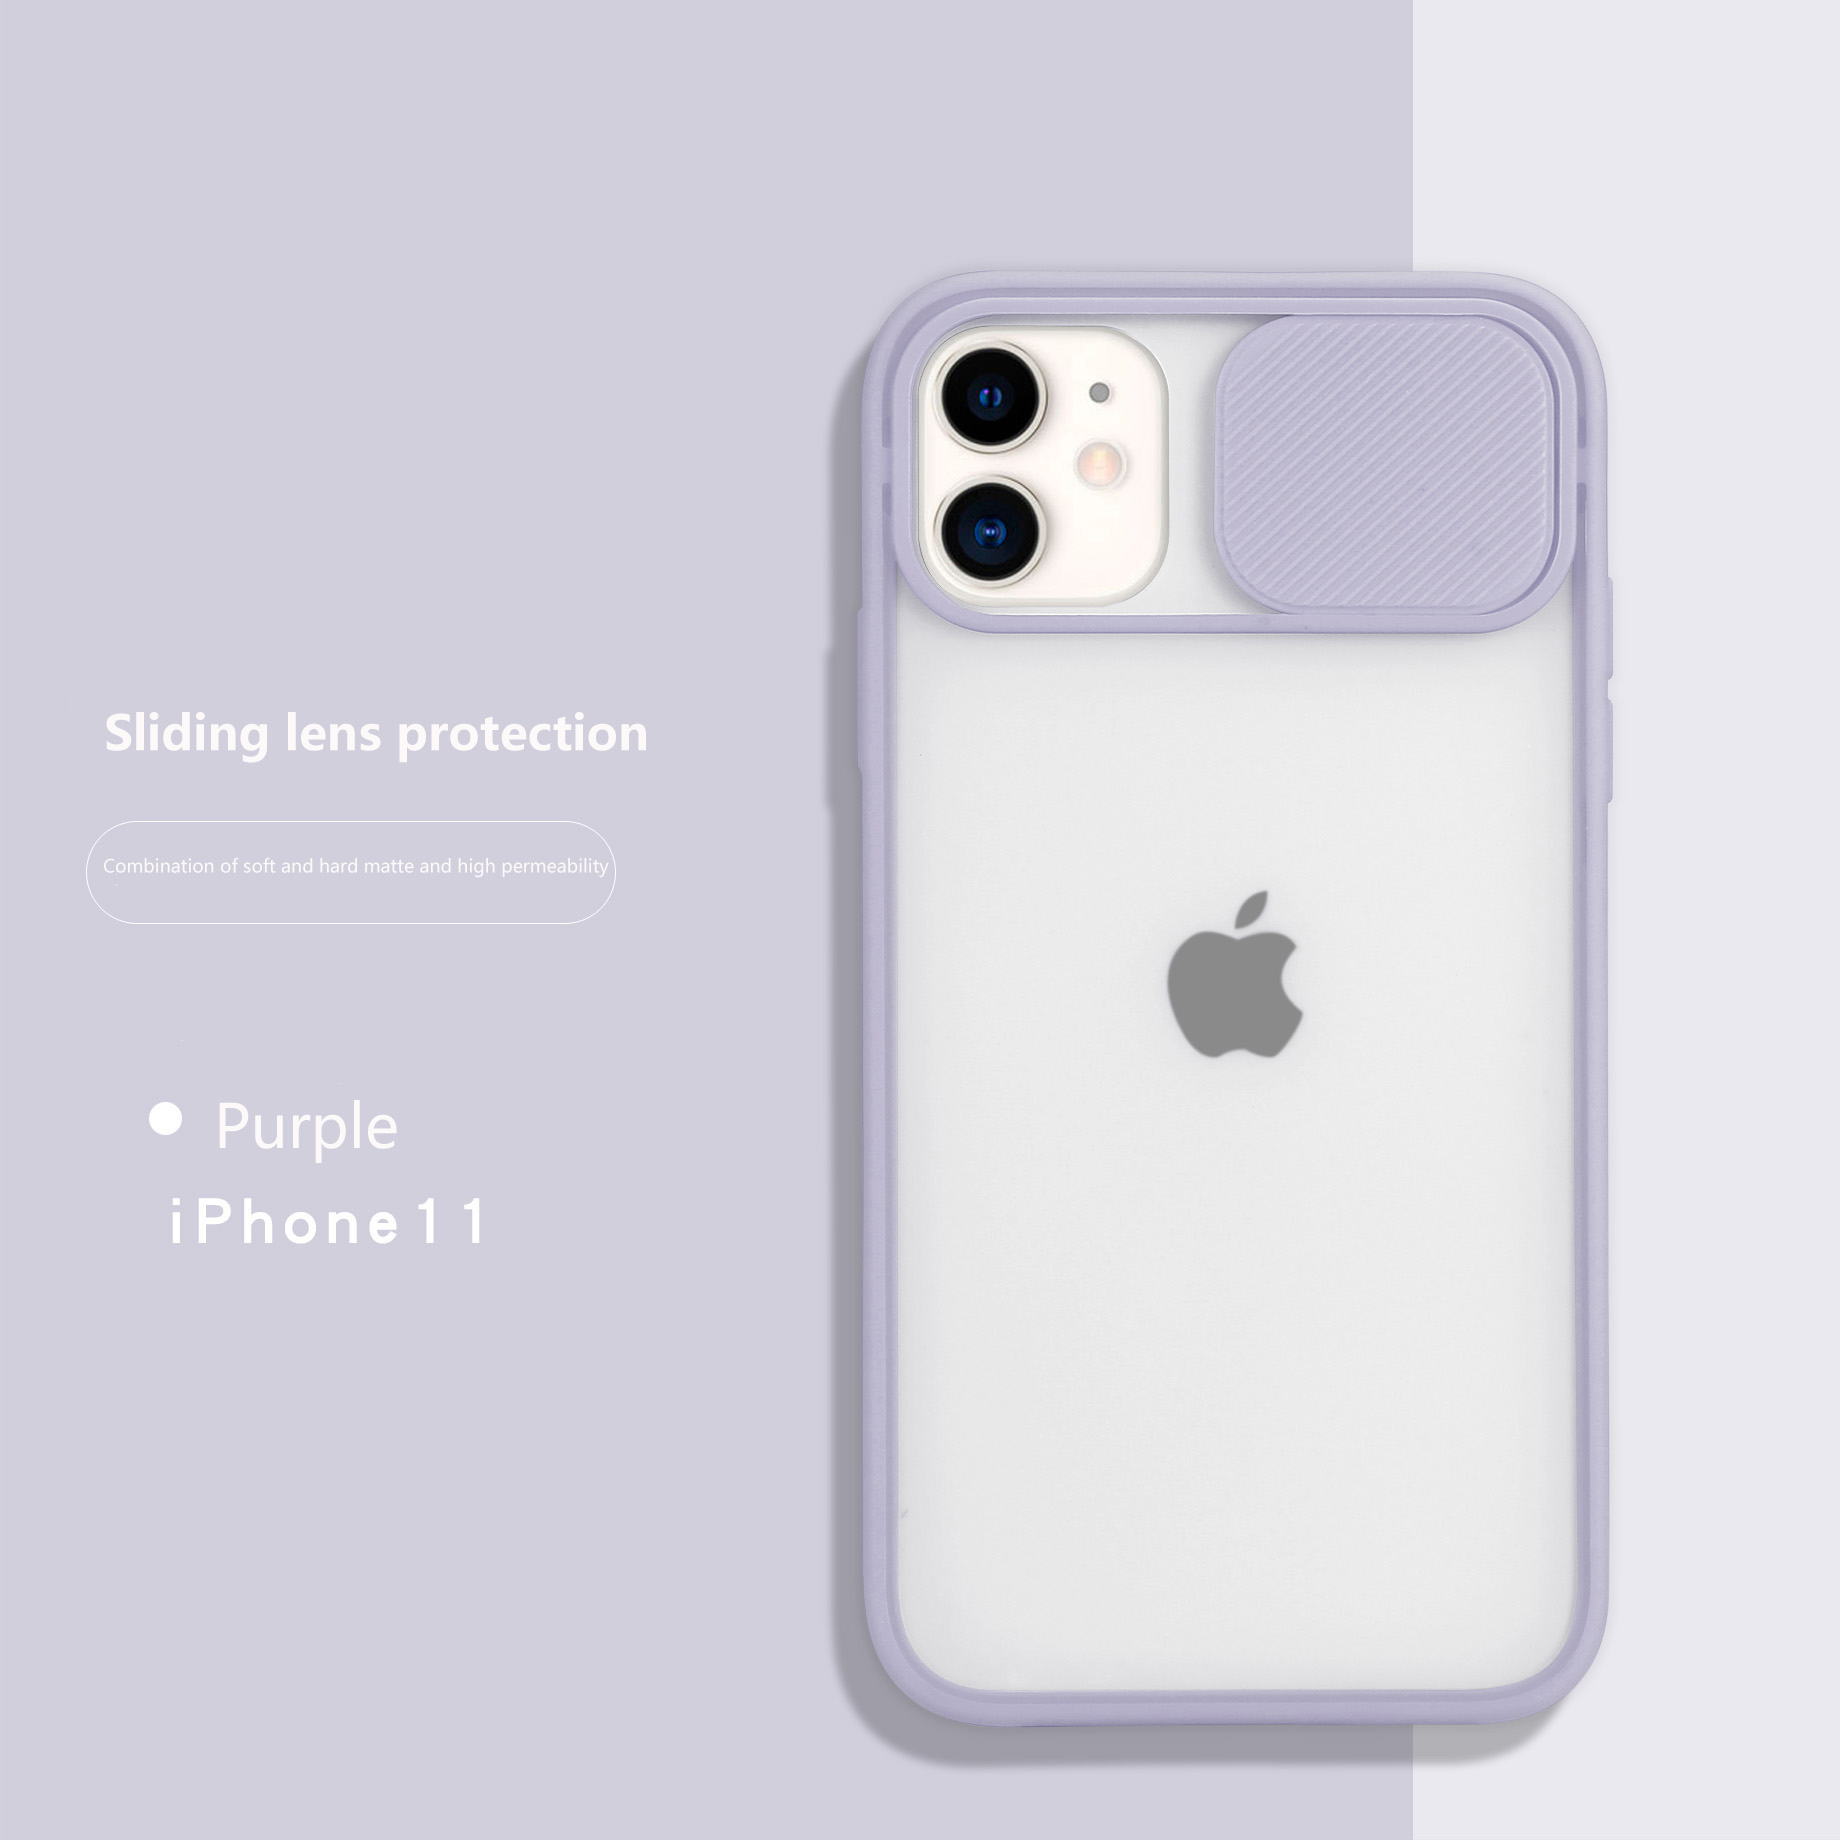 Camera Lens Protection iPhone 11 Clear Case-Lilac Purple Frame